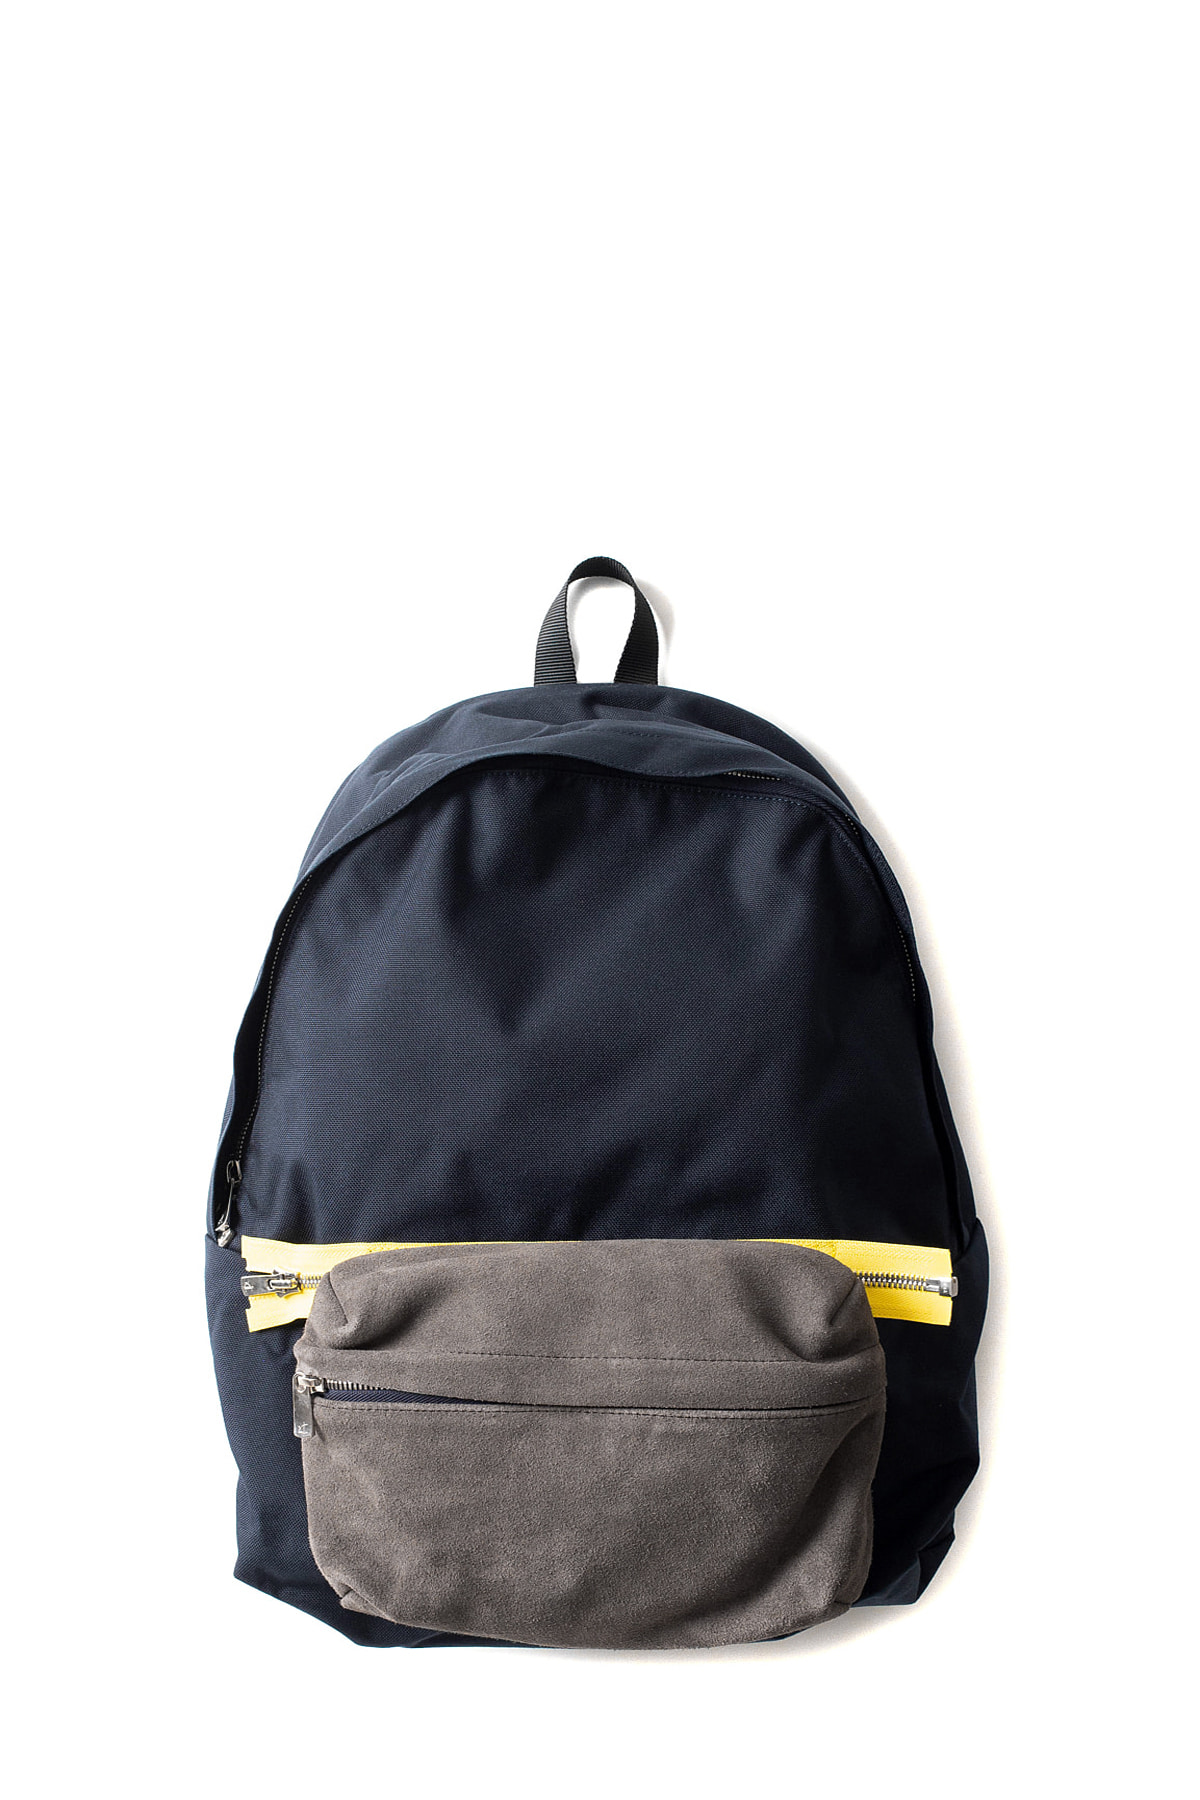 Hender Scheme : Y-B Back Pack (Navy)